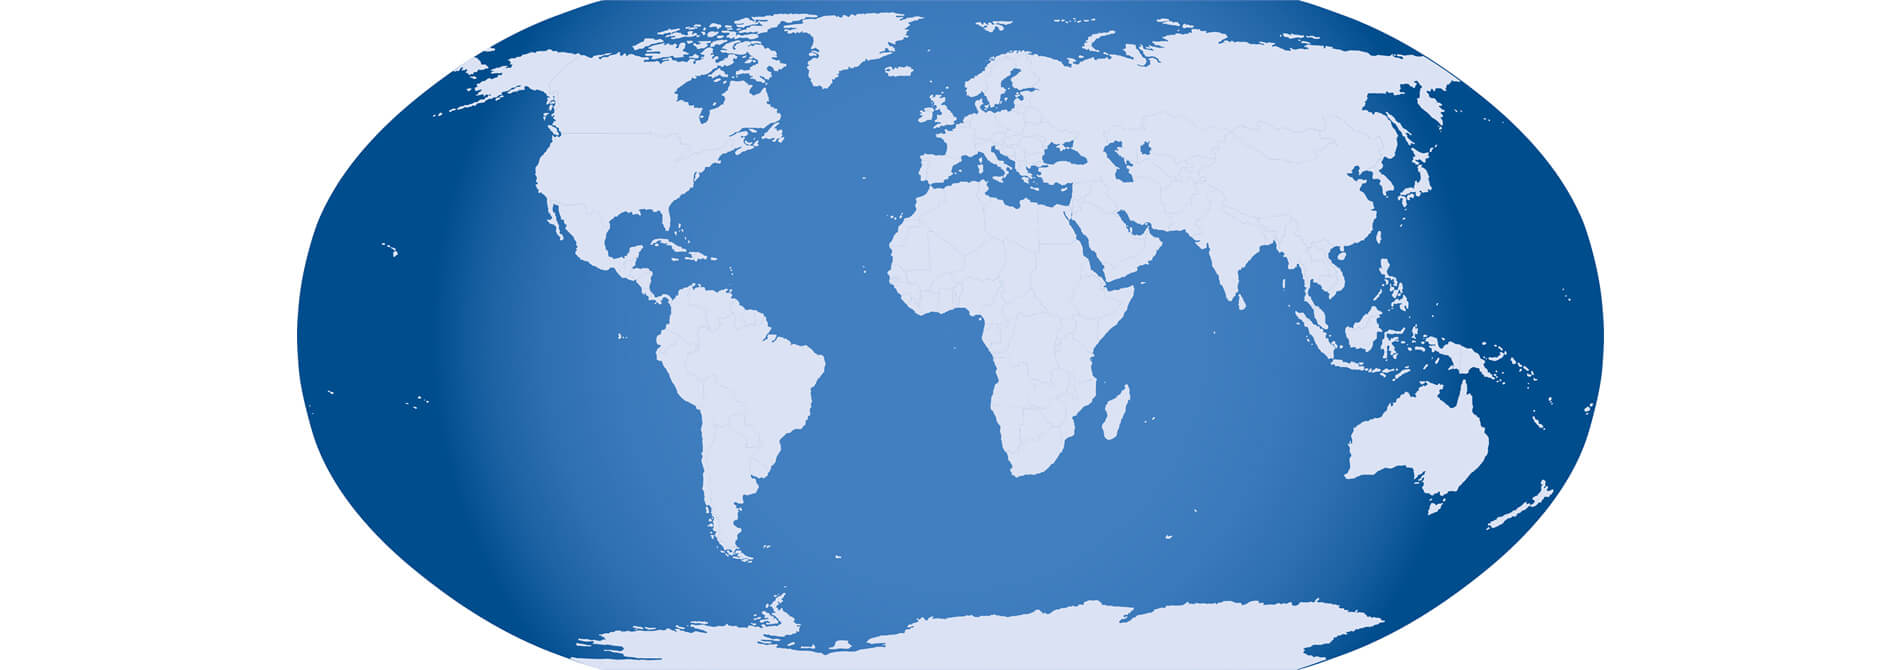 flat map of the world depicting land in white and water in blue